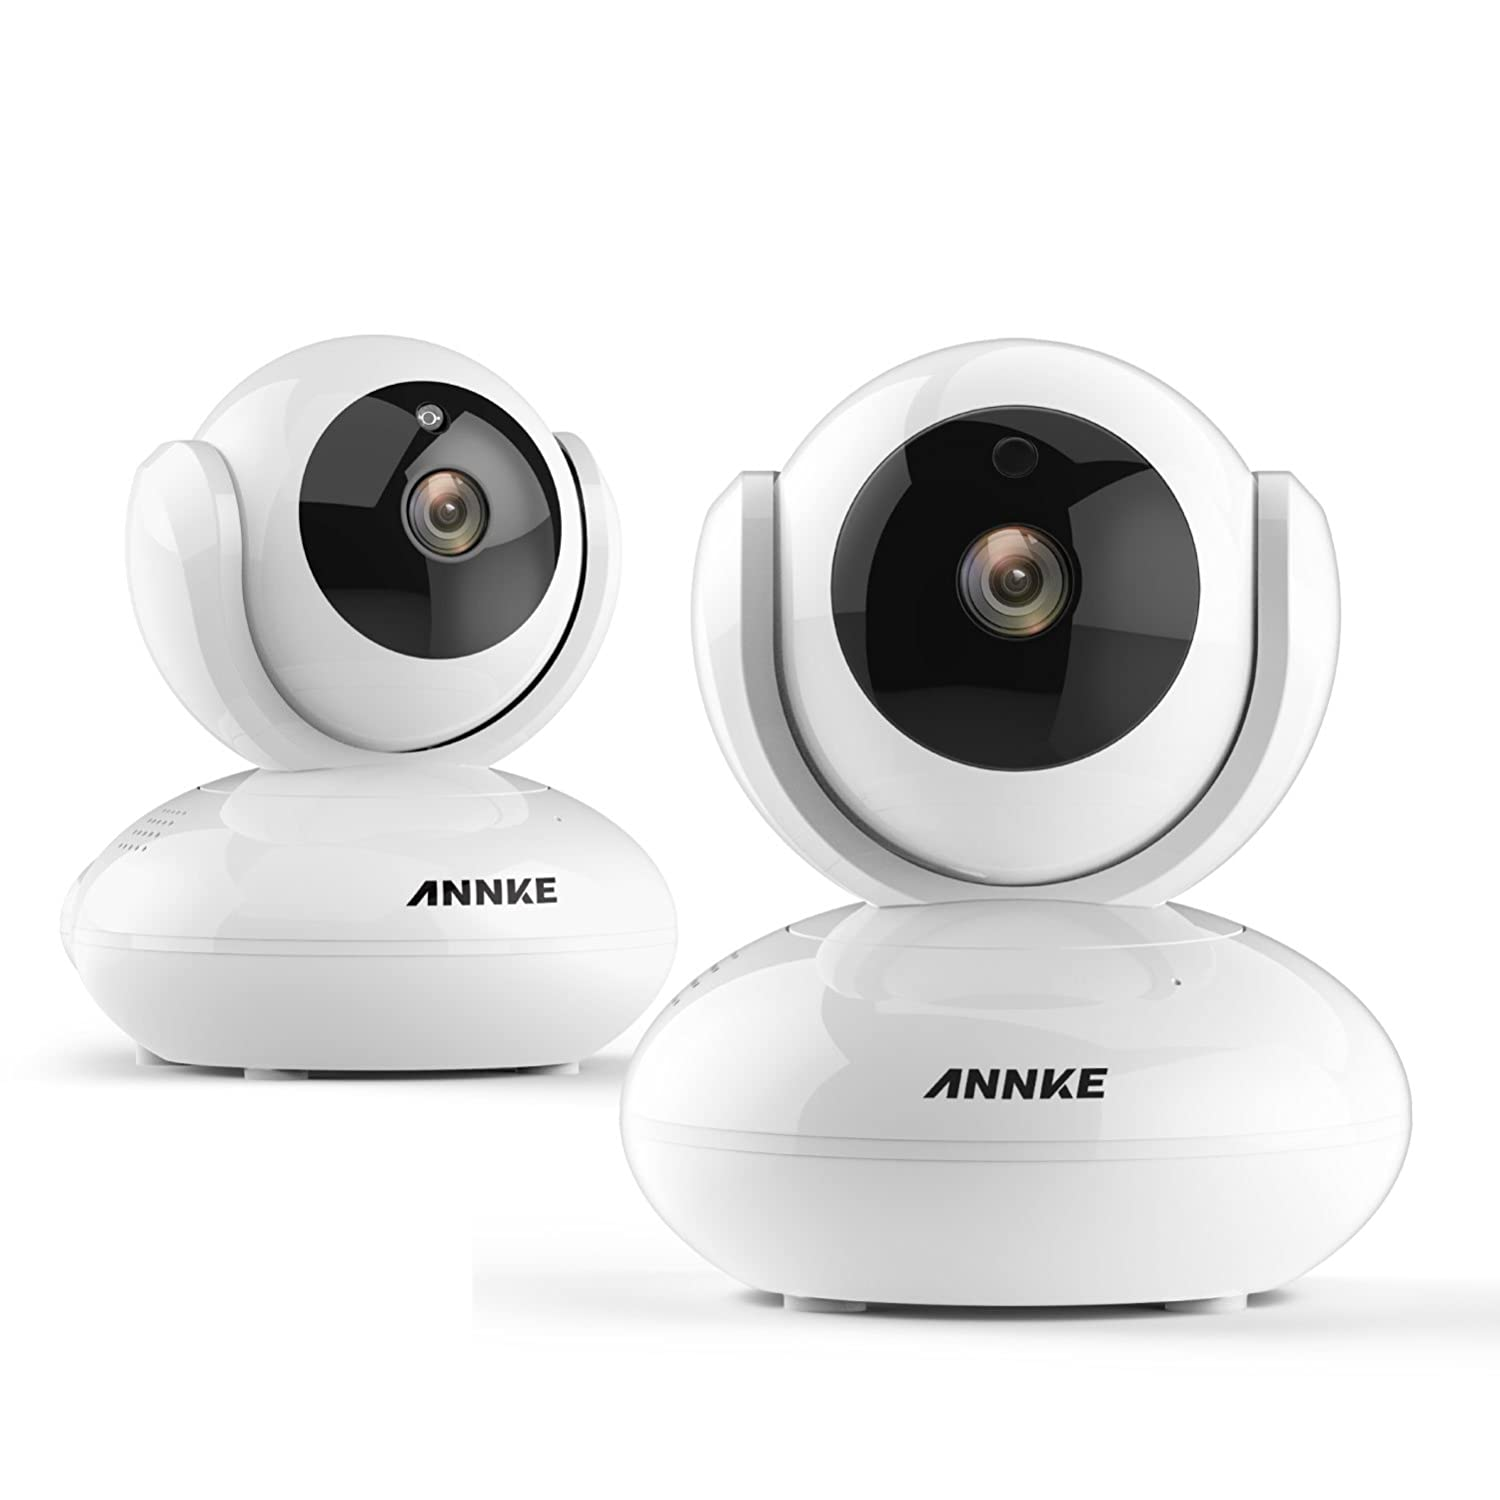 Network Wireless IP Camera, ANNKE 2X Indoor Security Cam 1080P WiFi Video Surveillance Monitor, Auto Pan Tilt Night Vision Motion Alarm Home Camera